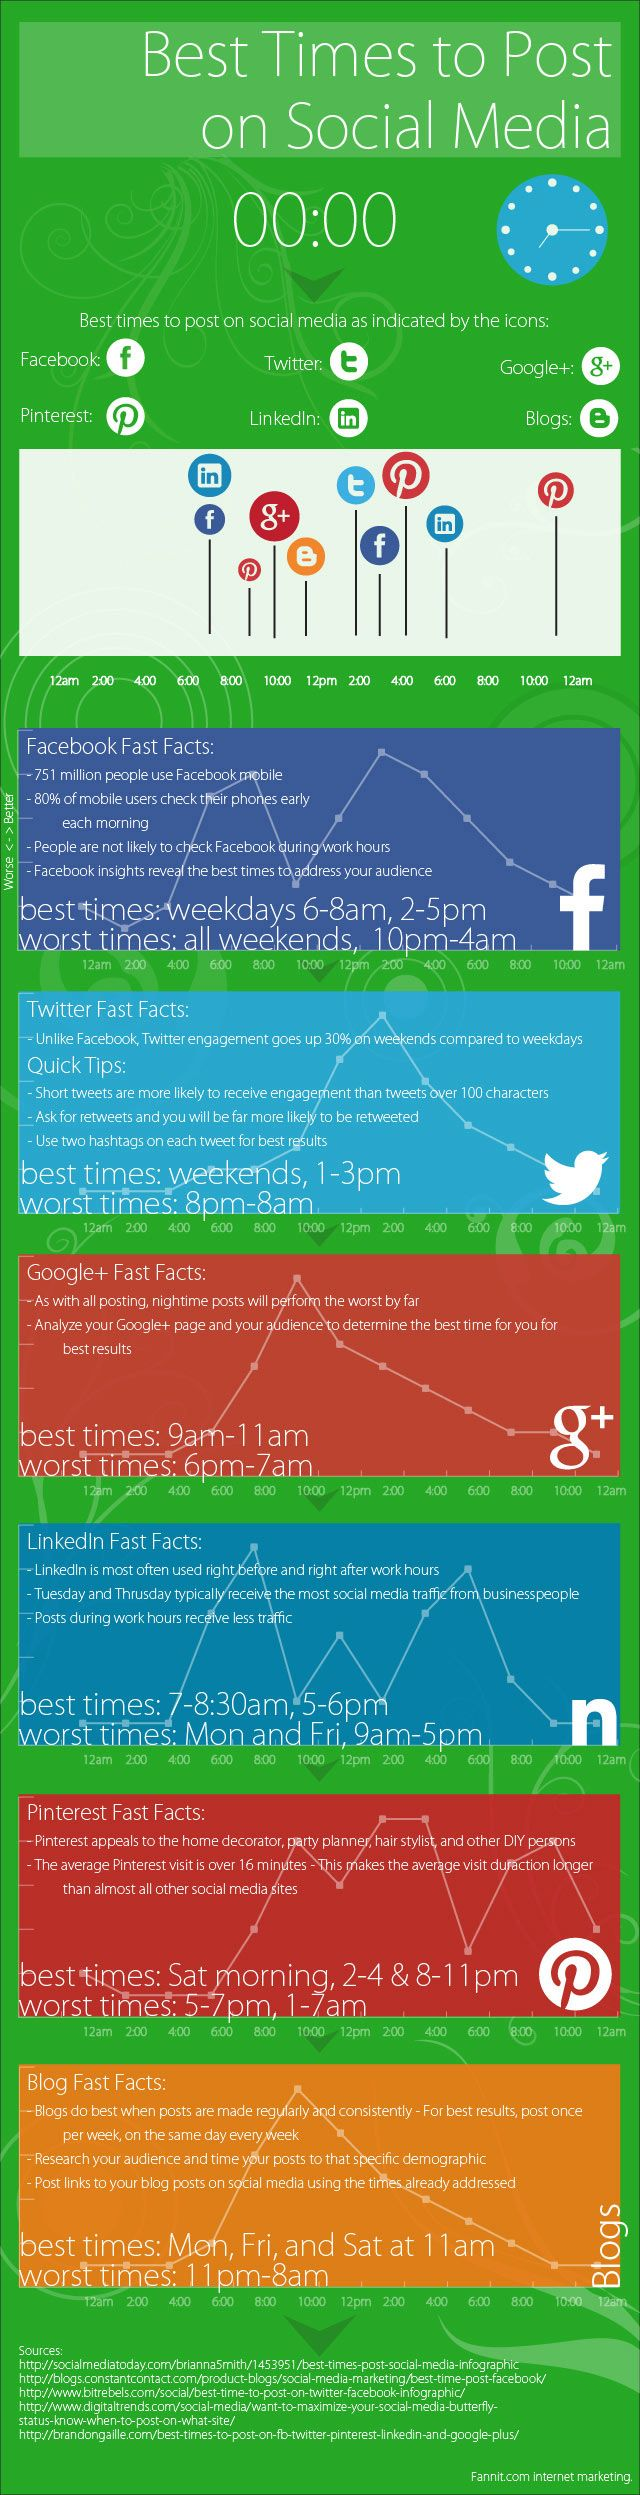 #Infographic: Best times for when to post to social media accounts (Facebook, Twitter, Google+, #Pinterest, LinkedIn, Blog)